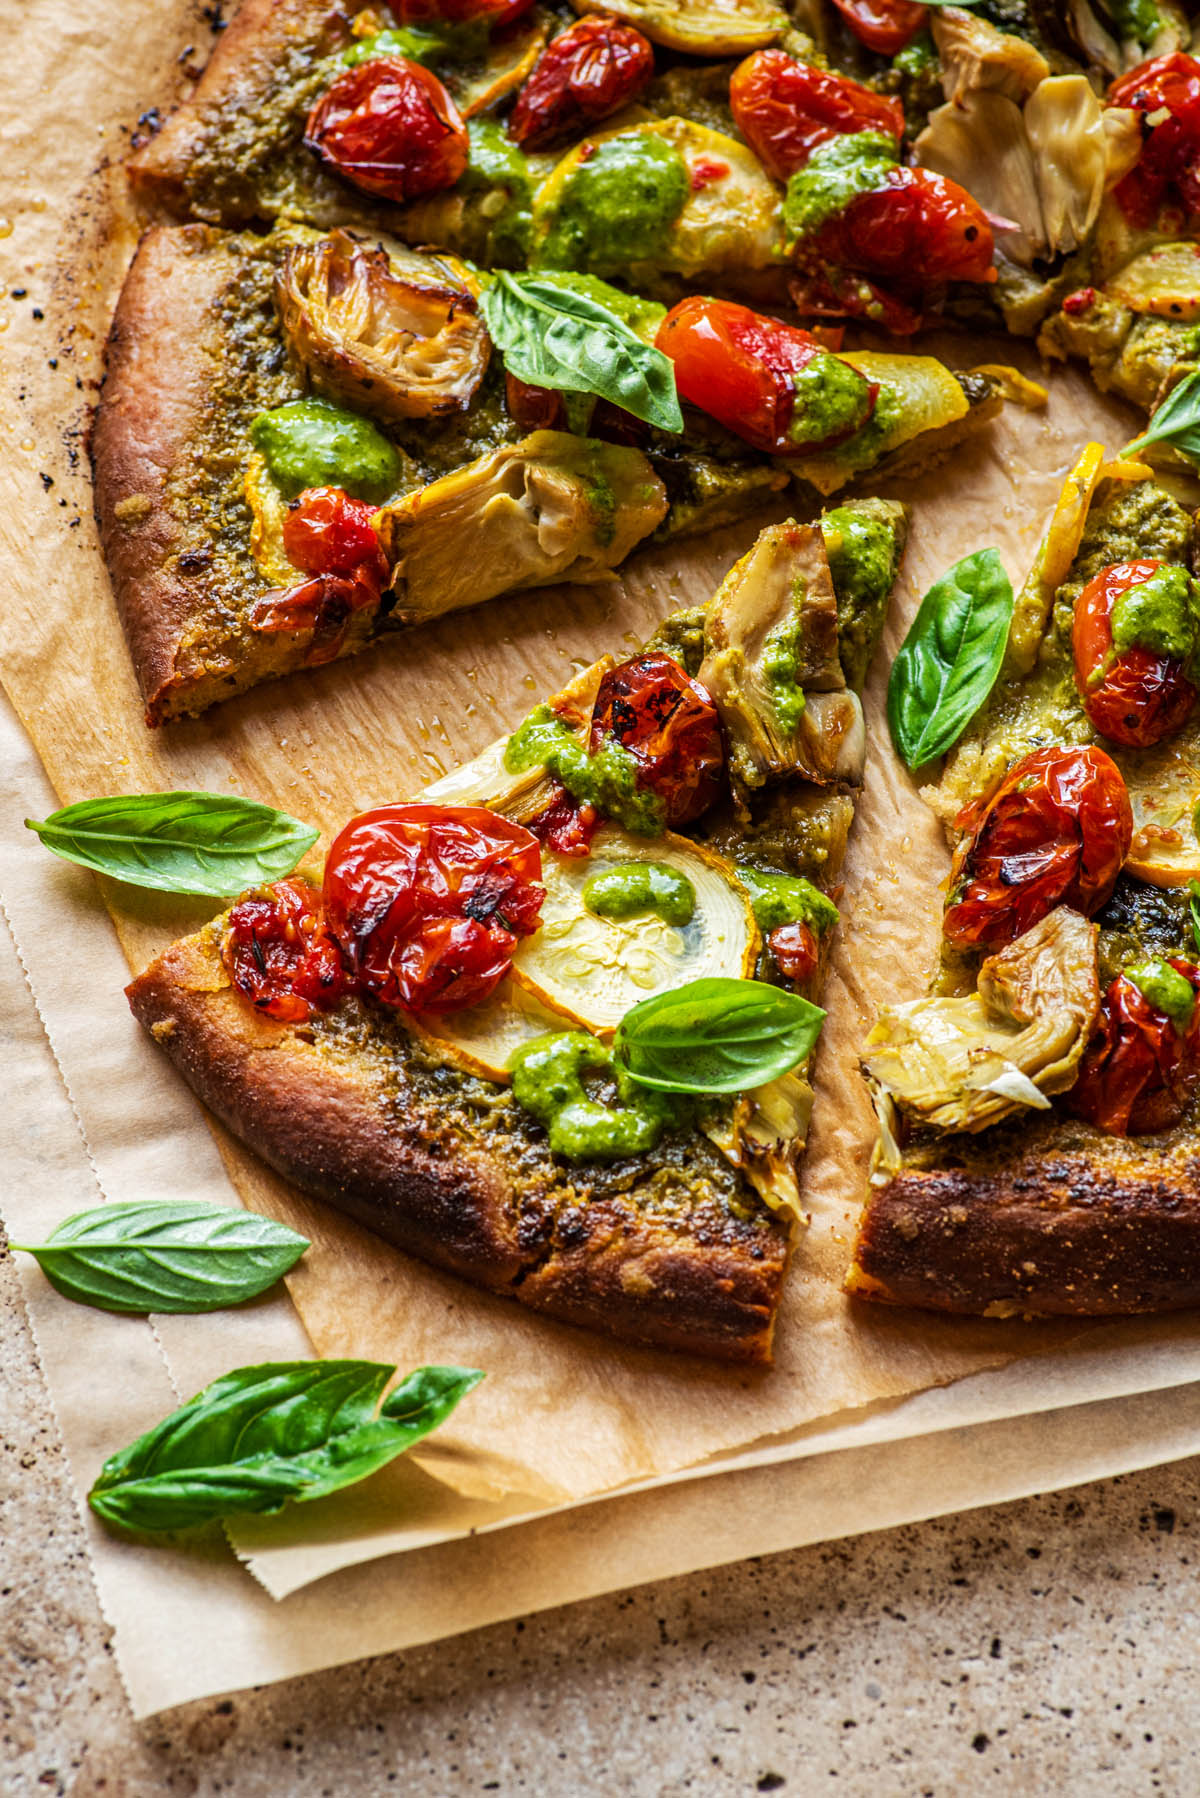 Backlit slices of pizza with fresh basil leaves on them.